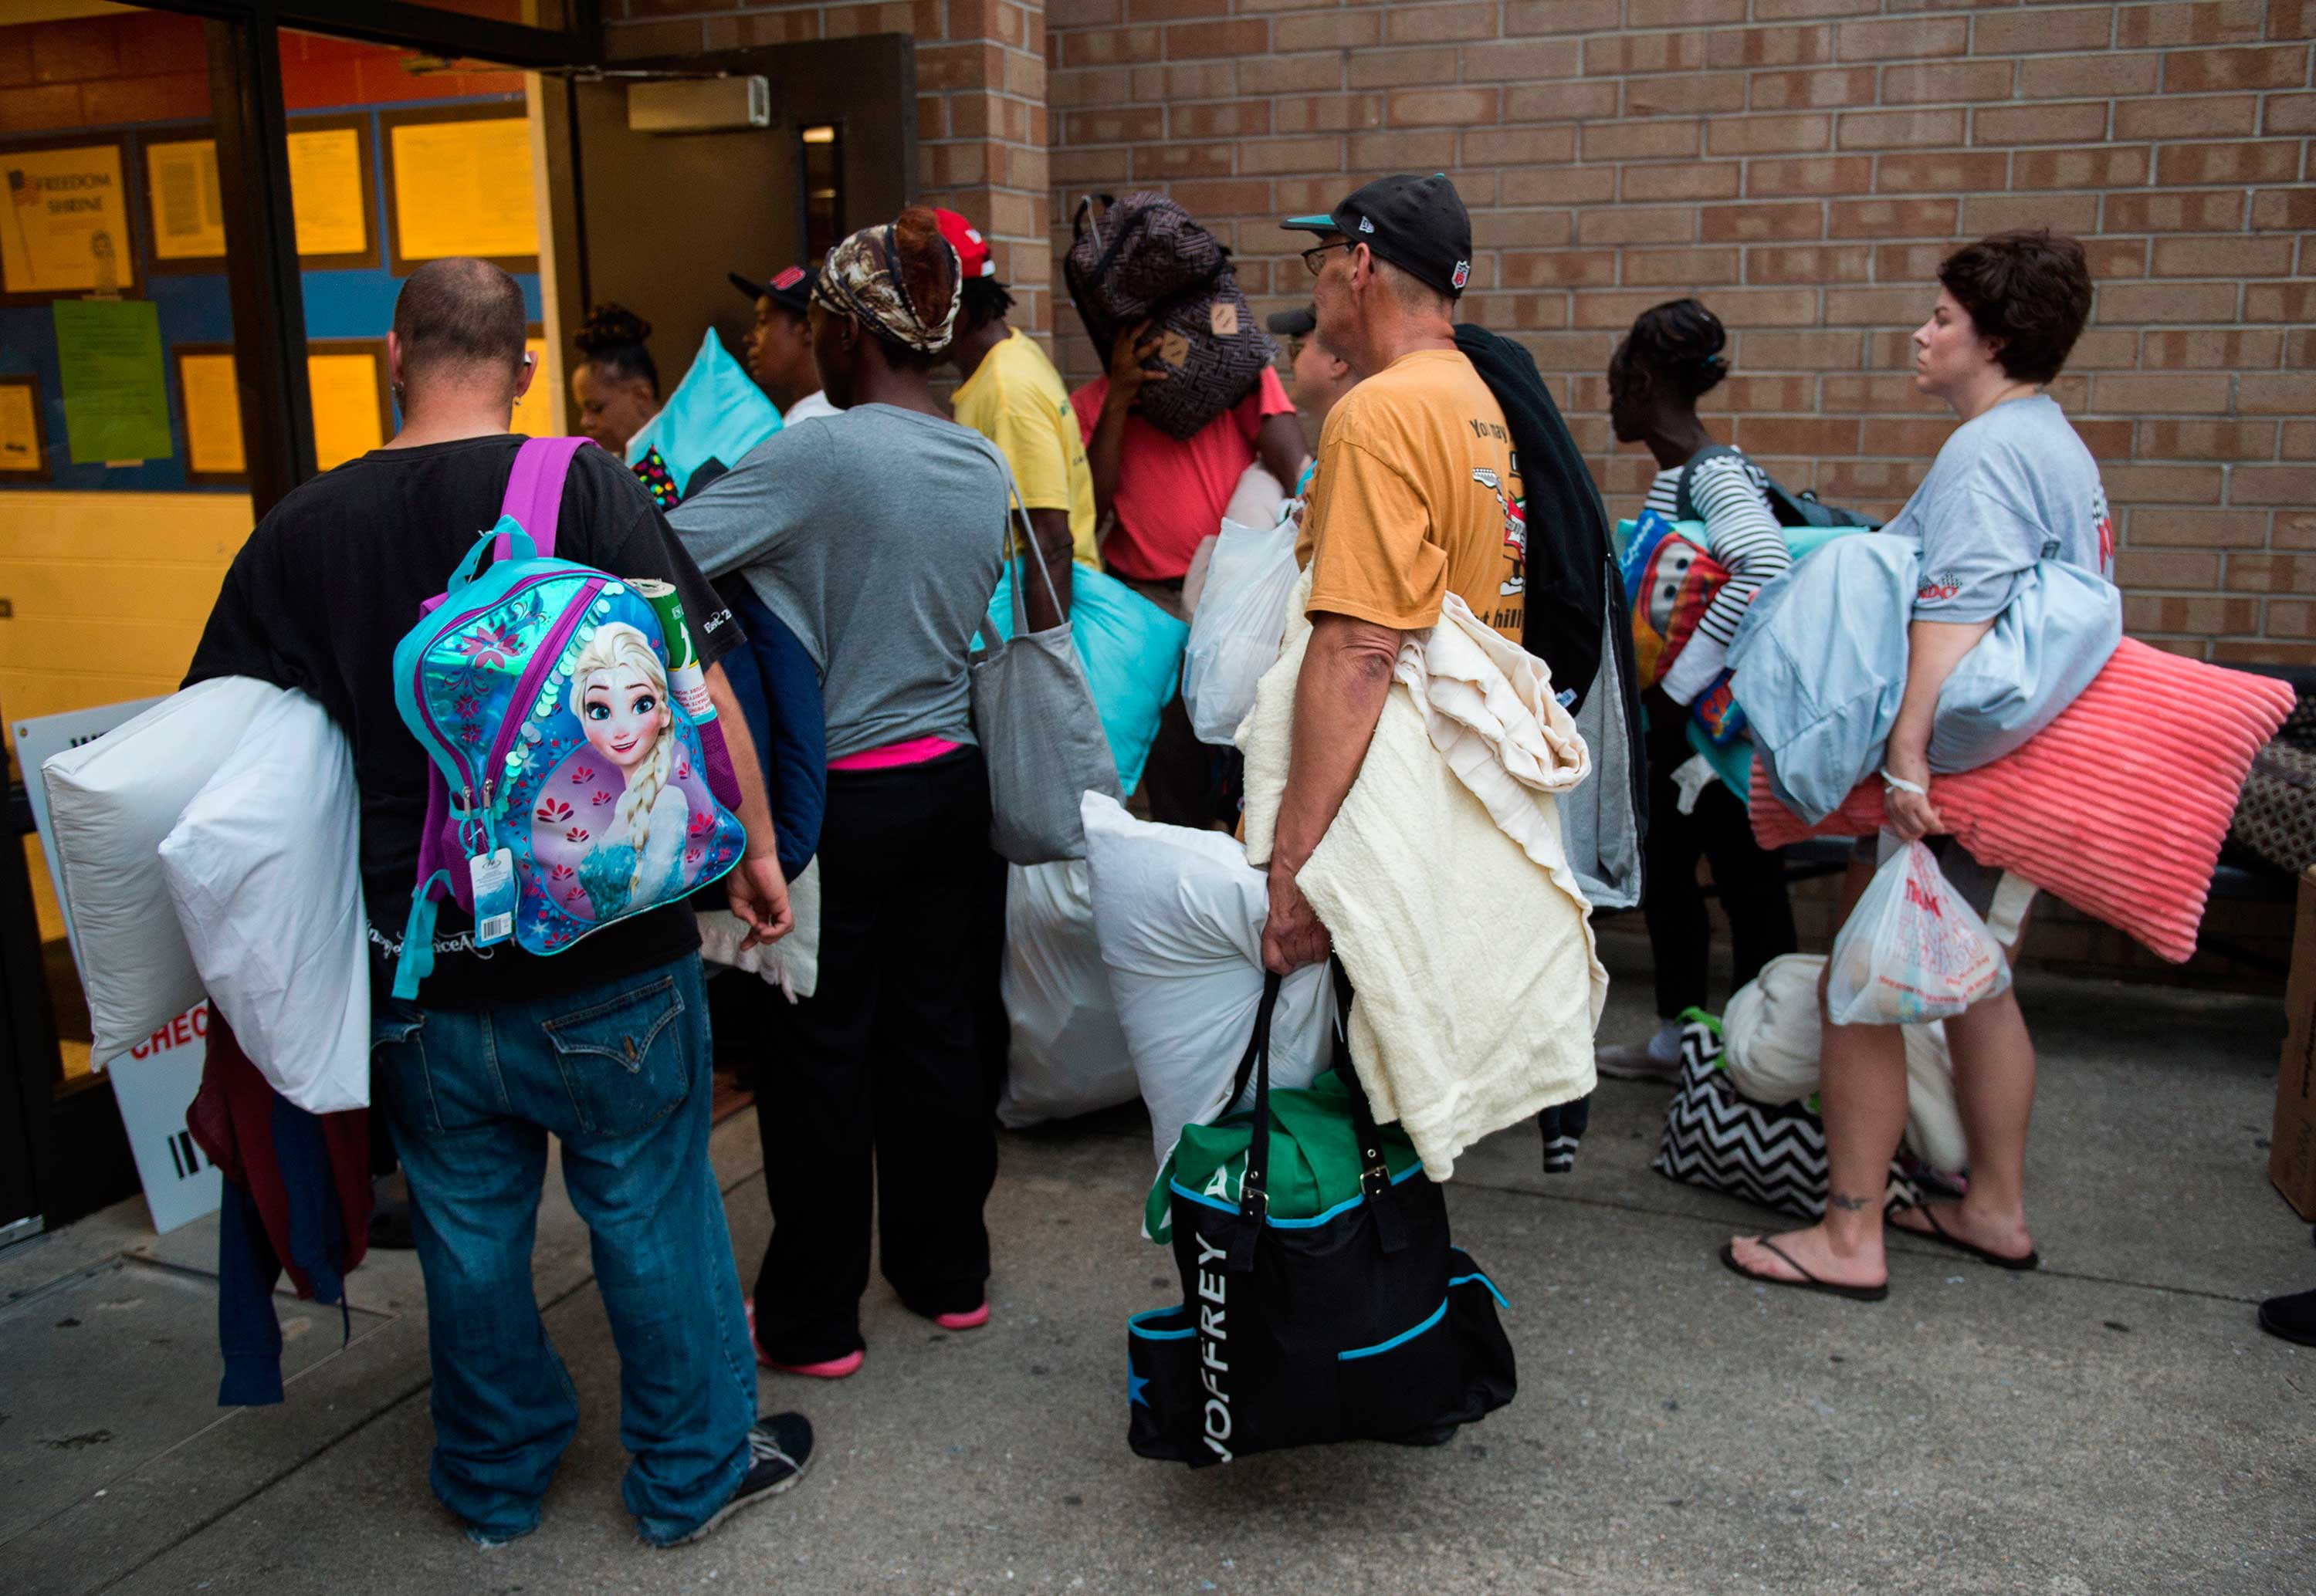 "<div class=""meta image-caption""><div class=""origin-logo origin-image none""><span>none</span></div><span class=""caption-text"">People line up to enter a hurricane shelter at Trask Middle School in wilmington, North Carolina, on September 11, 2018. (ANDREW CABALLERO-REYNOLDS/AFP/Getty Images)</span></div>"